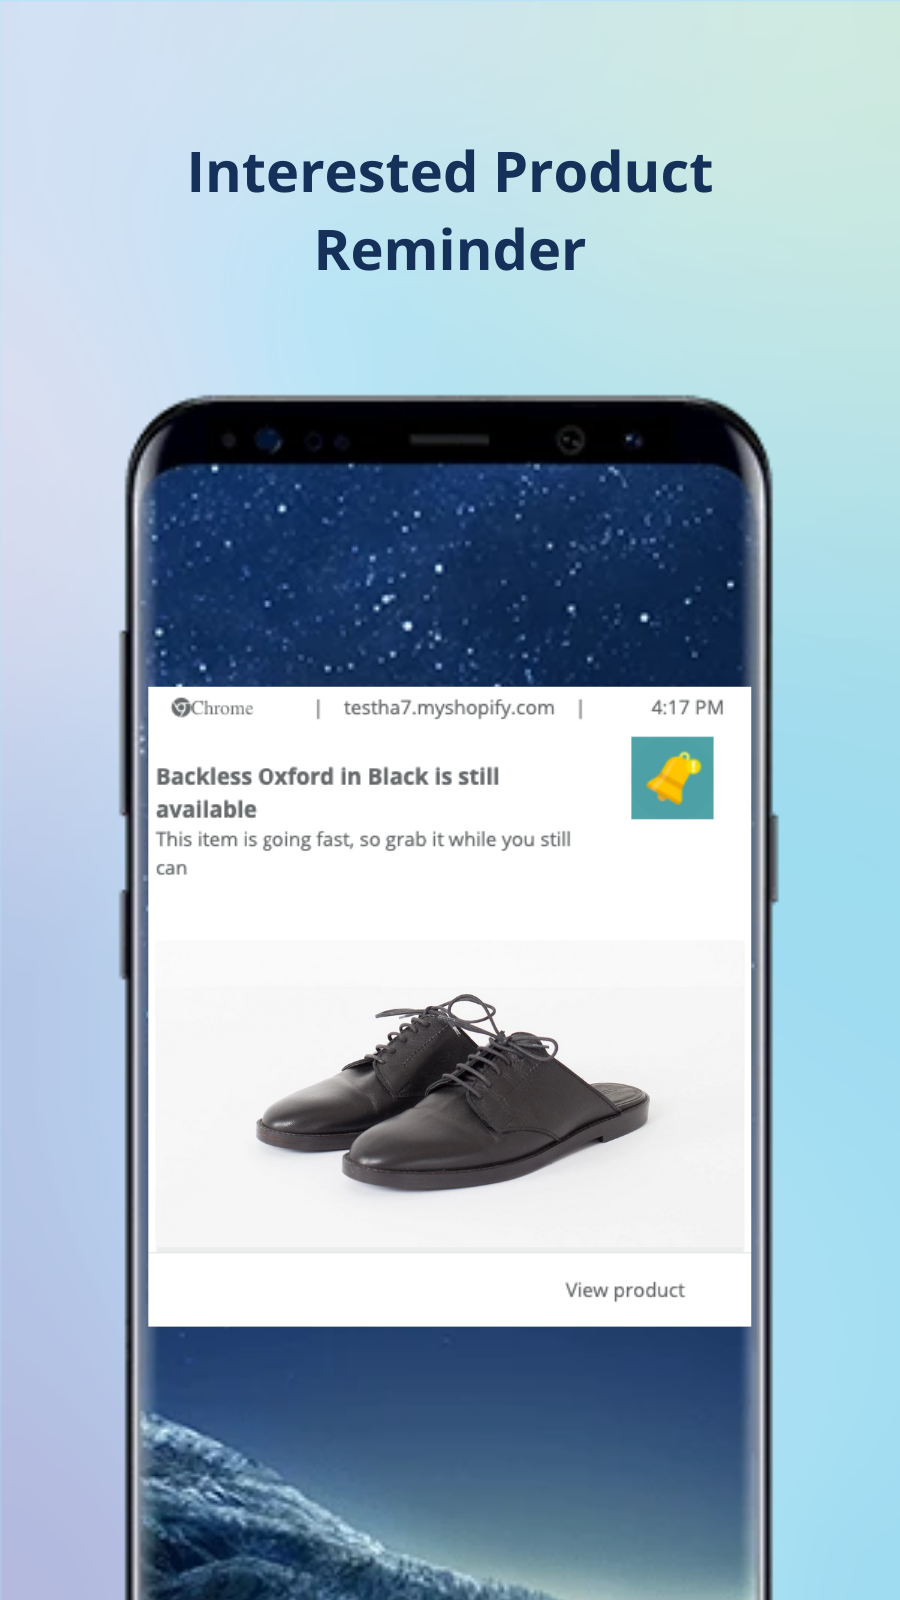 Mobile Push Notifications app: Interested Product reminders